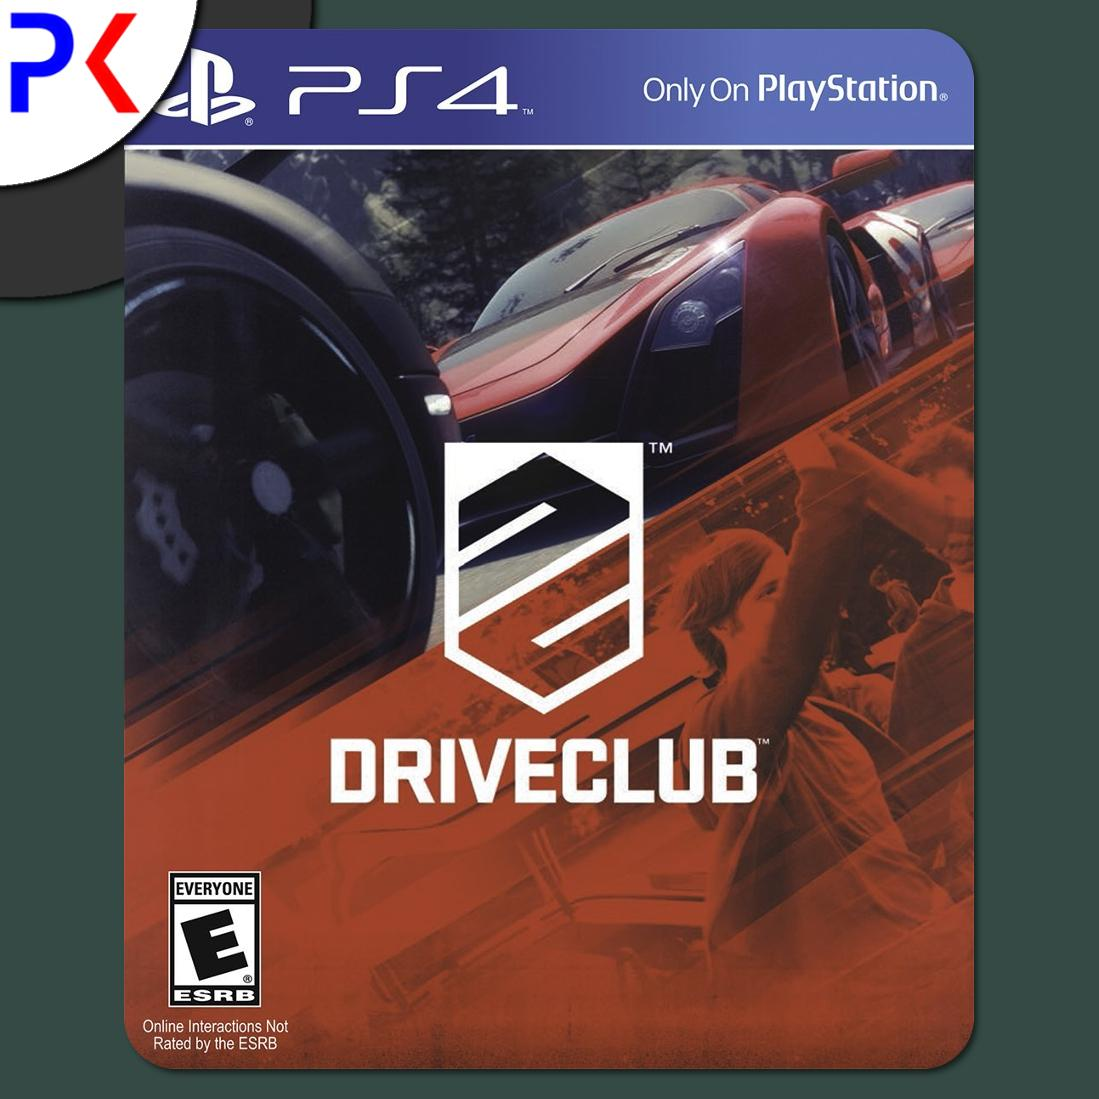 Ps4 Driveclub R2 Lowest Price